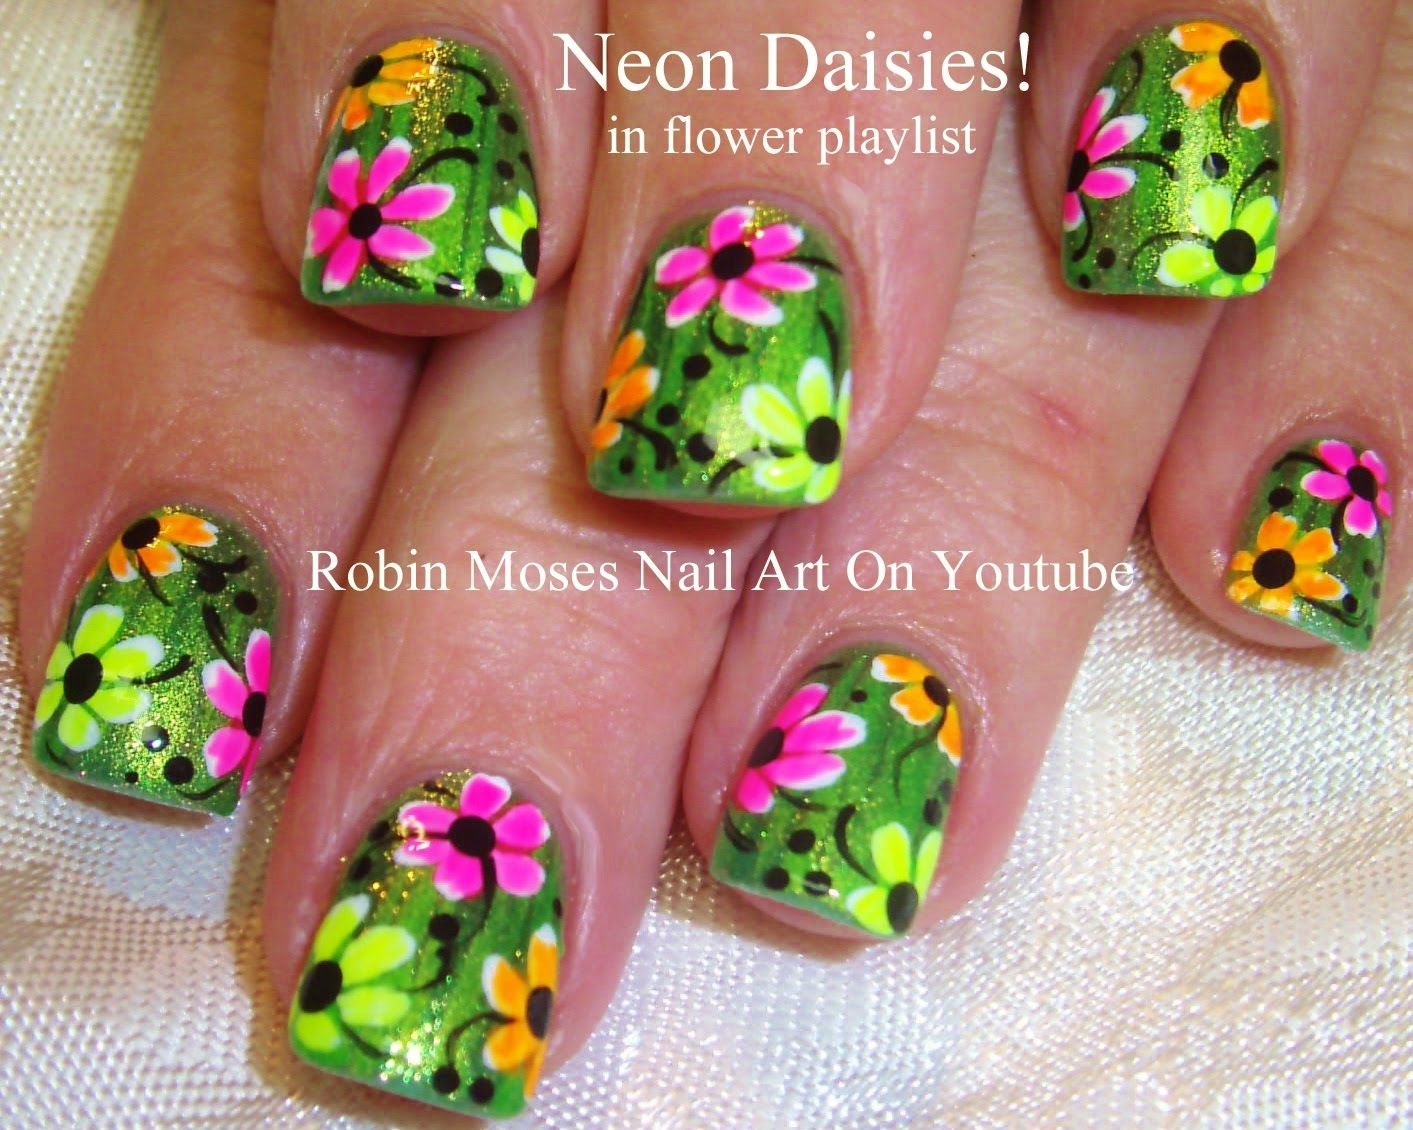 Easy Neon Daisy Nail Art Tutorial | robin moses nail art videos ...